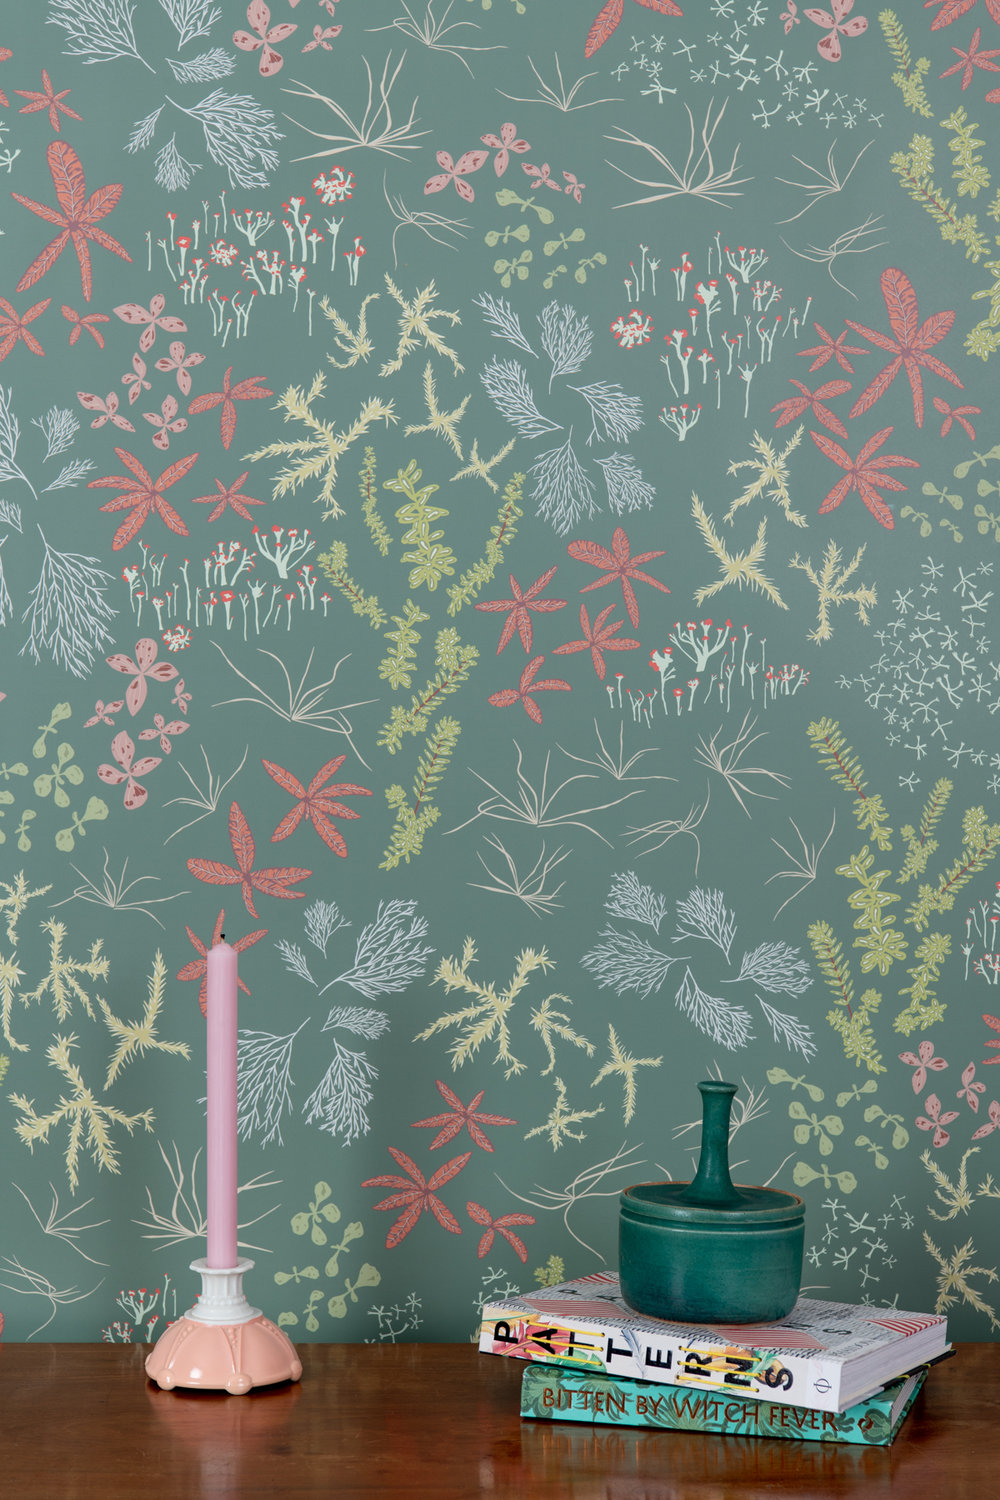 Kate Golding Bog (Rosemary) wallpaper // Modern wallcoverings and interior decor.